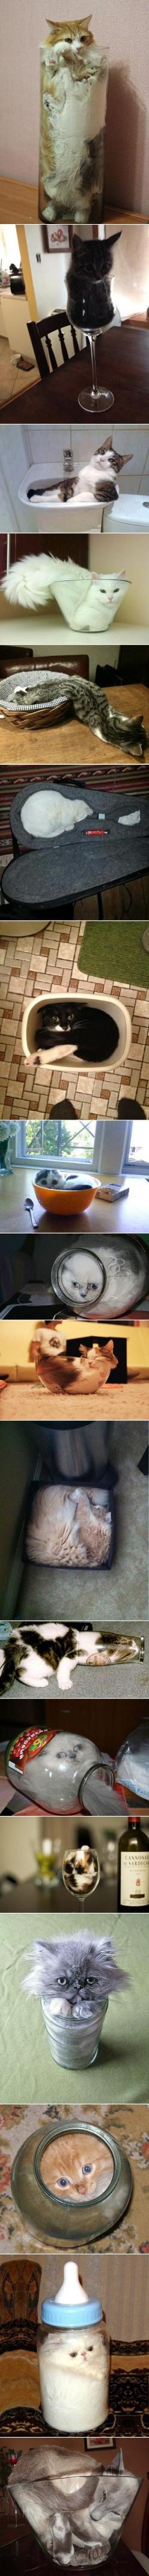 Obviously cats are not claustrophobic.: Kitty Cats, Funny Cats, Container, Proof Cats, Crazy Cat, Liquid Cats, Animal, Cat Lady